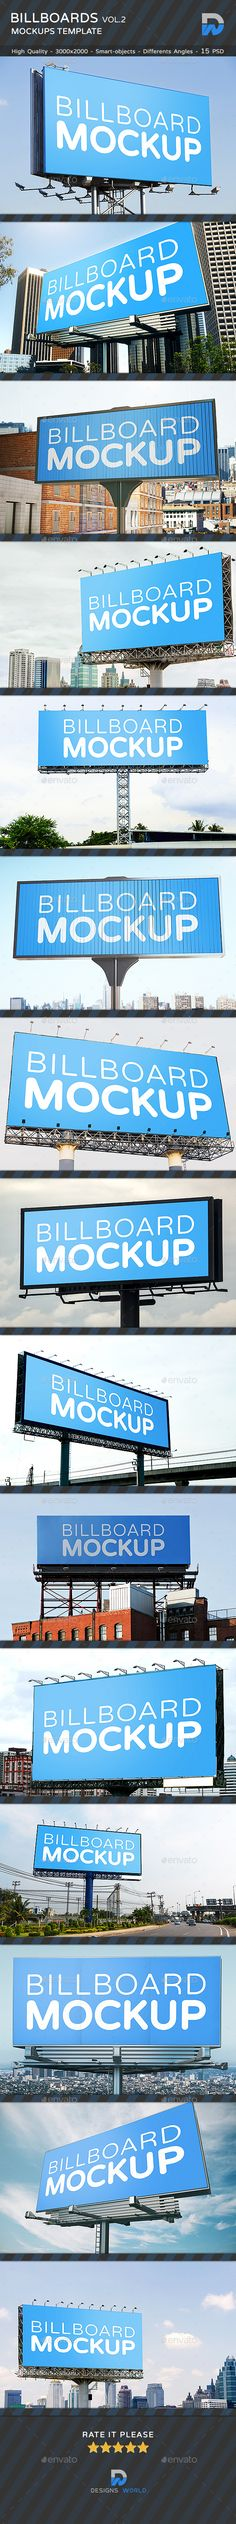 15 Billboards Mockup